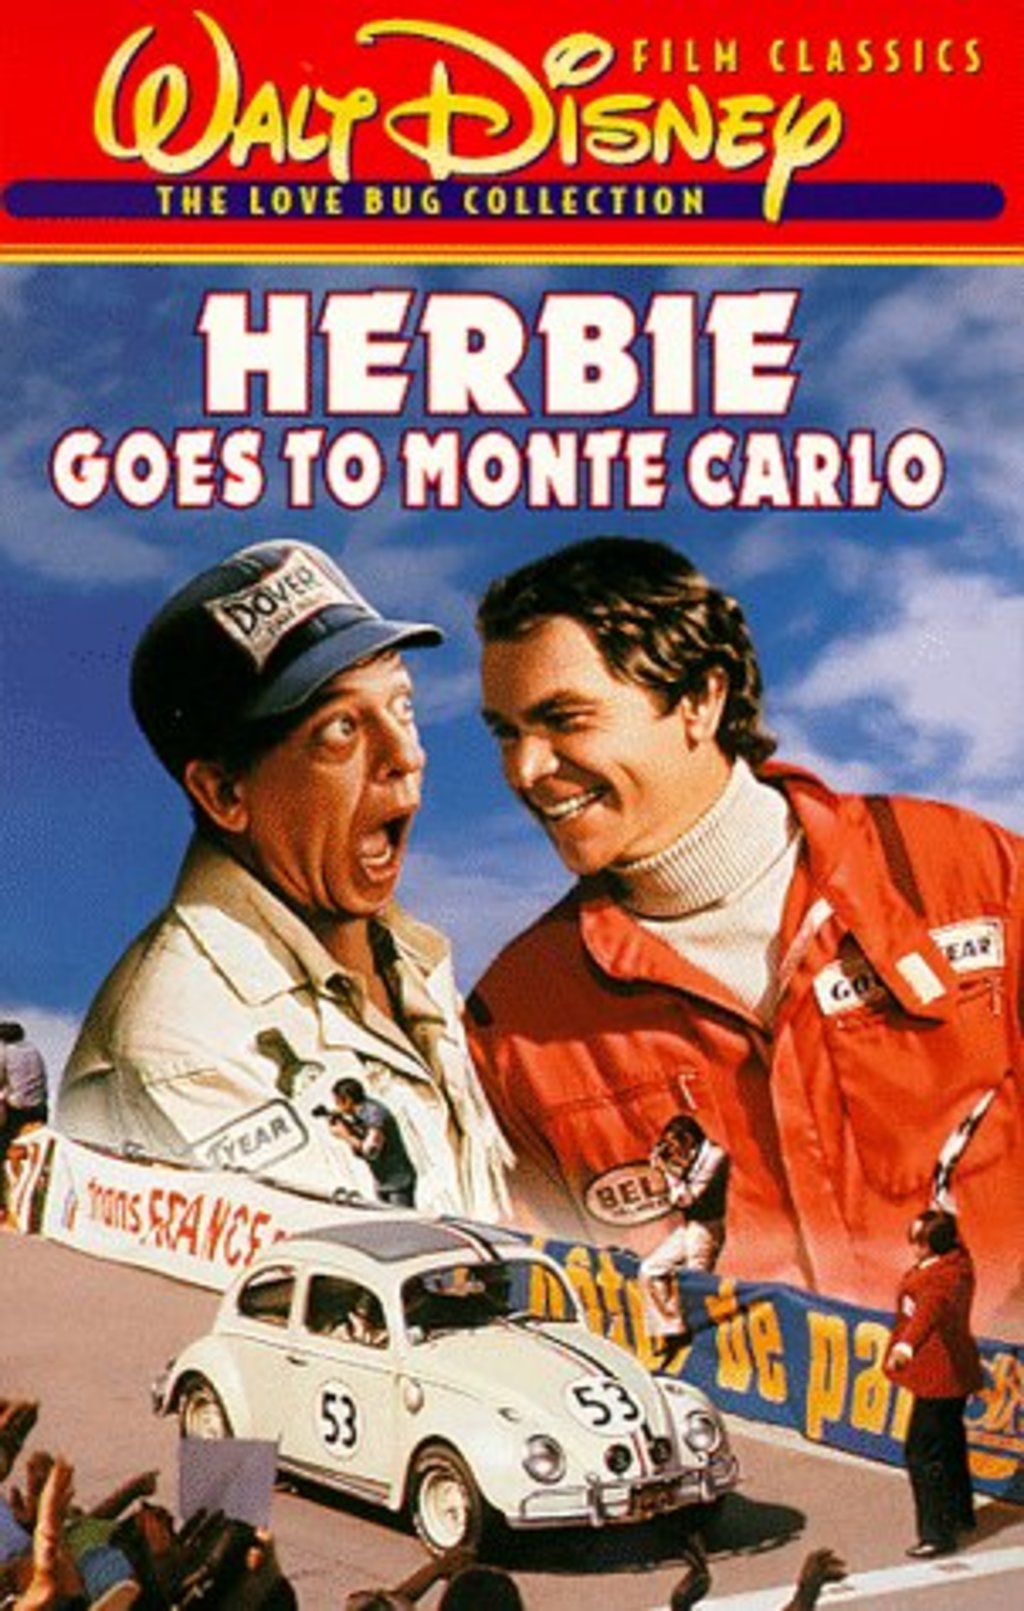 Watch Herbie Goes To Monte Carlo On Netflix Today